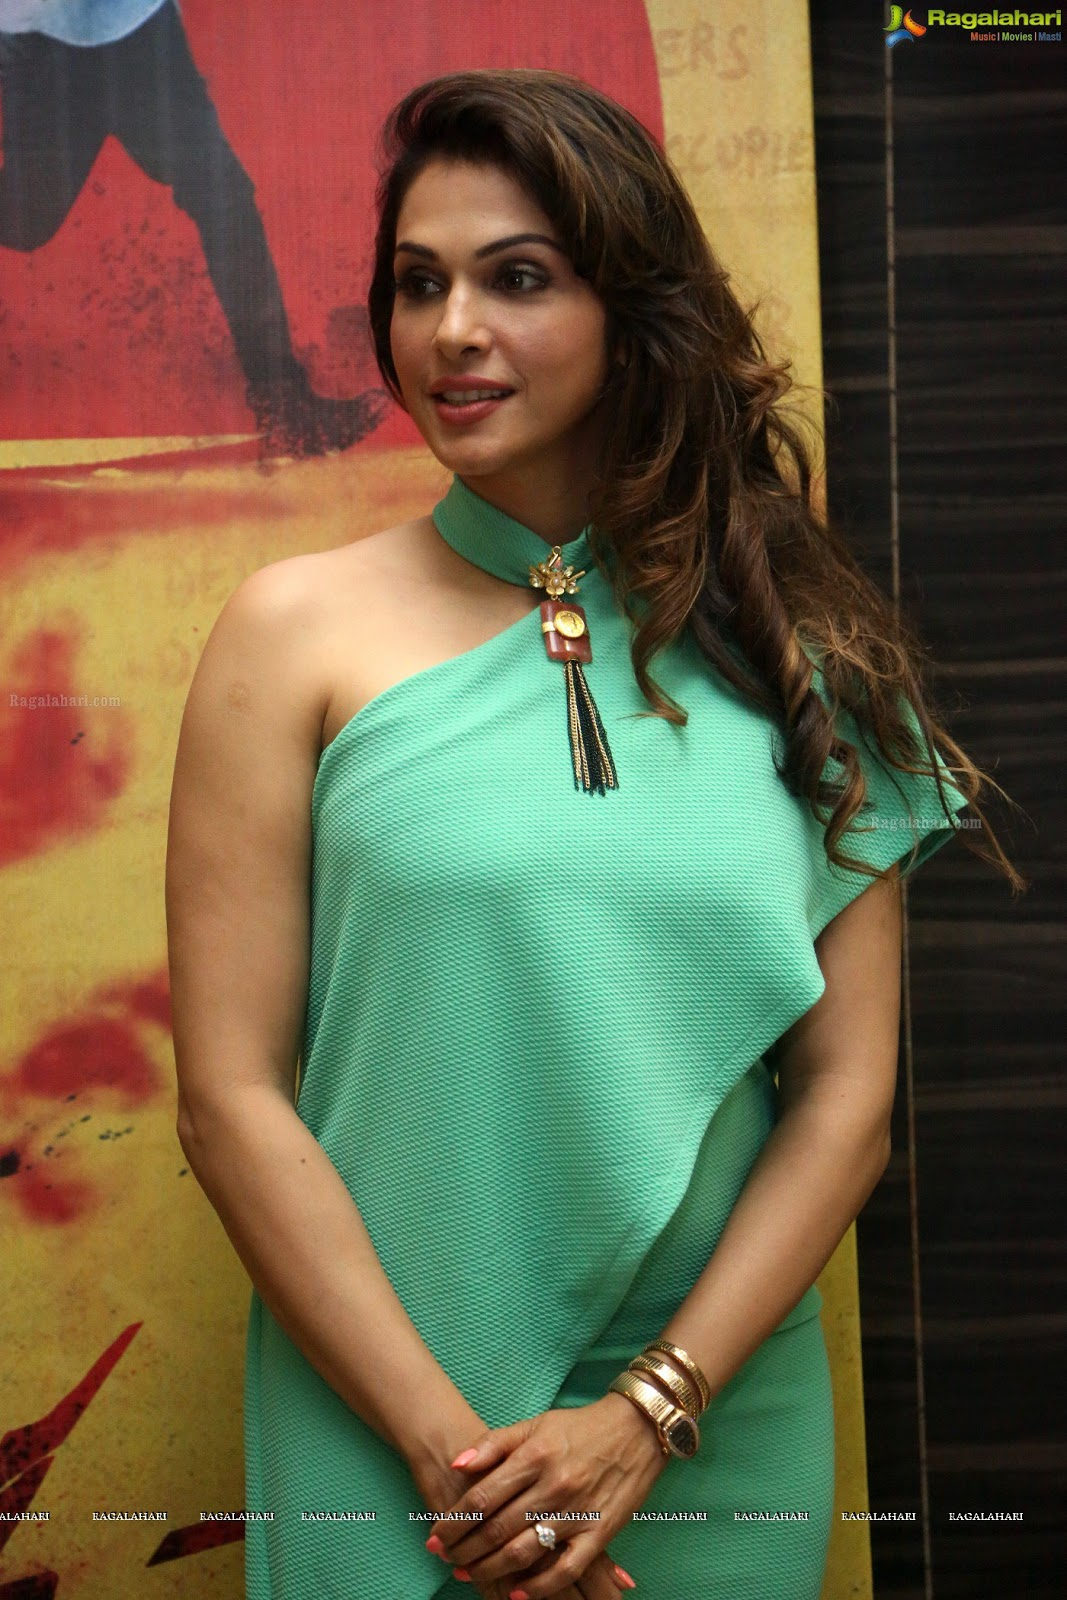 Isha koppikar galleries 84